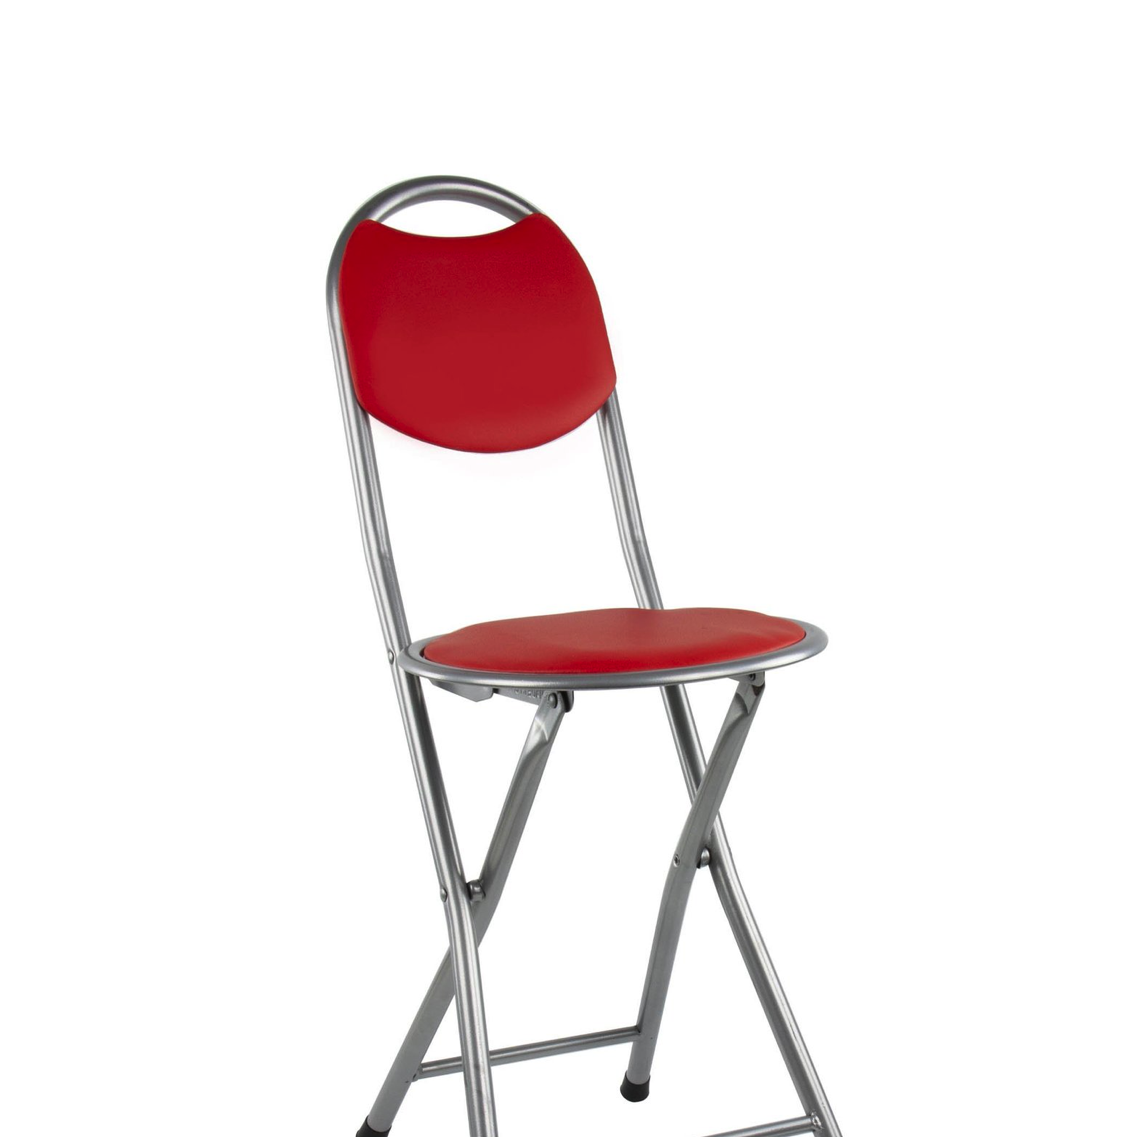 Foldable Round Dining Chair Indoor Outdoor Seating Diner Chair RED 9395